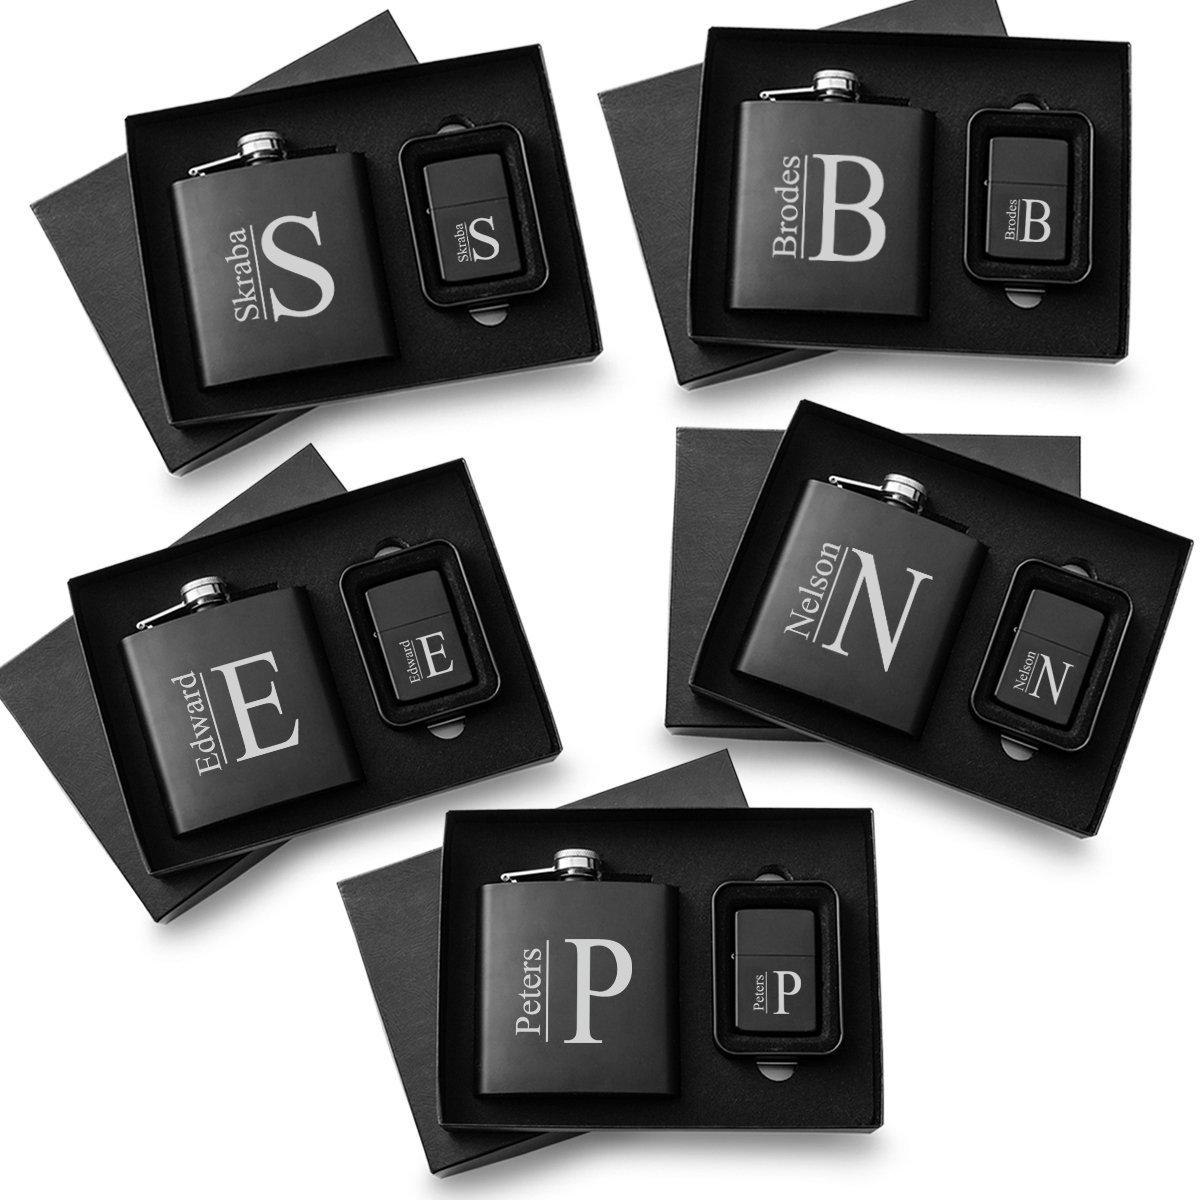 Personalized-Matte-Black-Flask-and-Lighter-Gift-Box-Set-of-5-Lighter-and-Flask-Sets